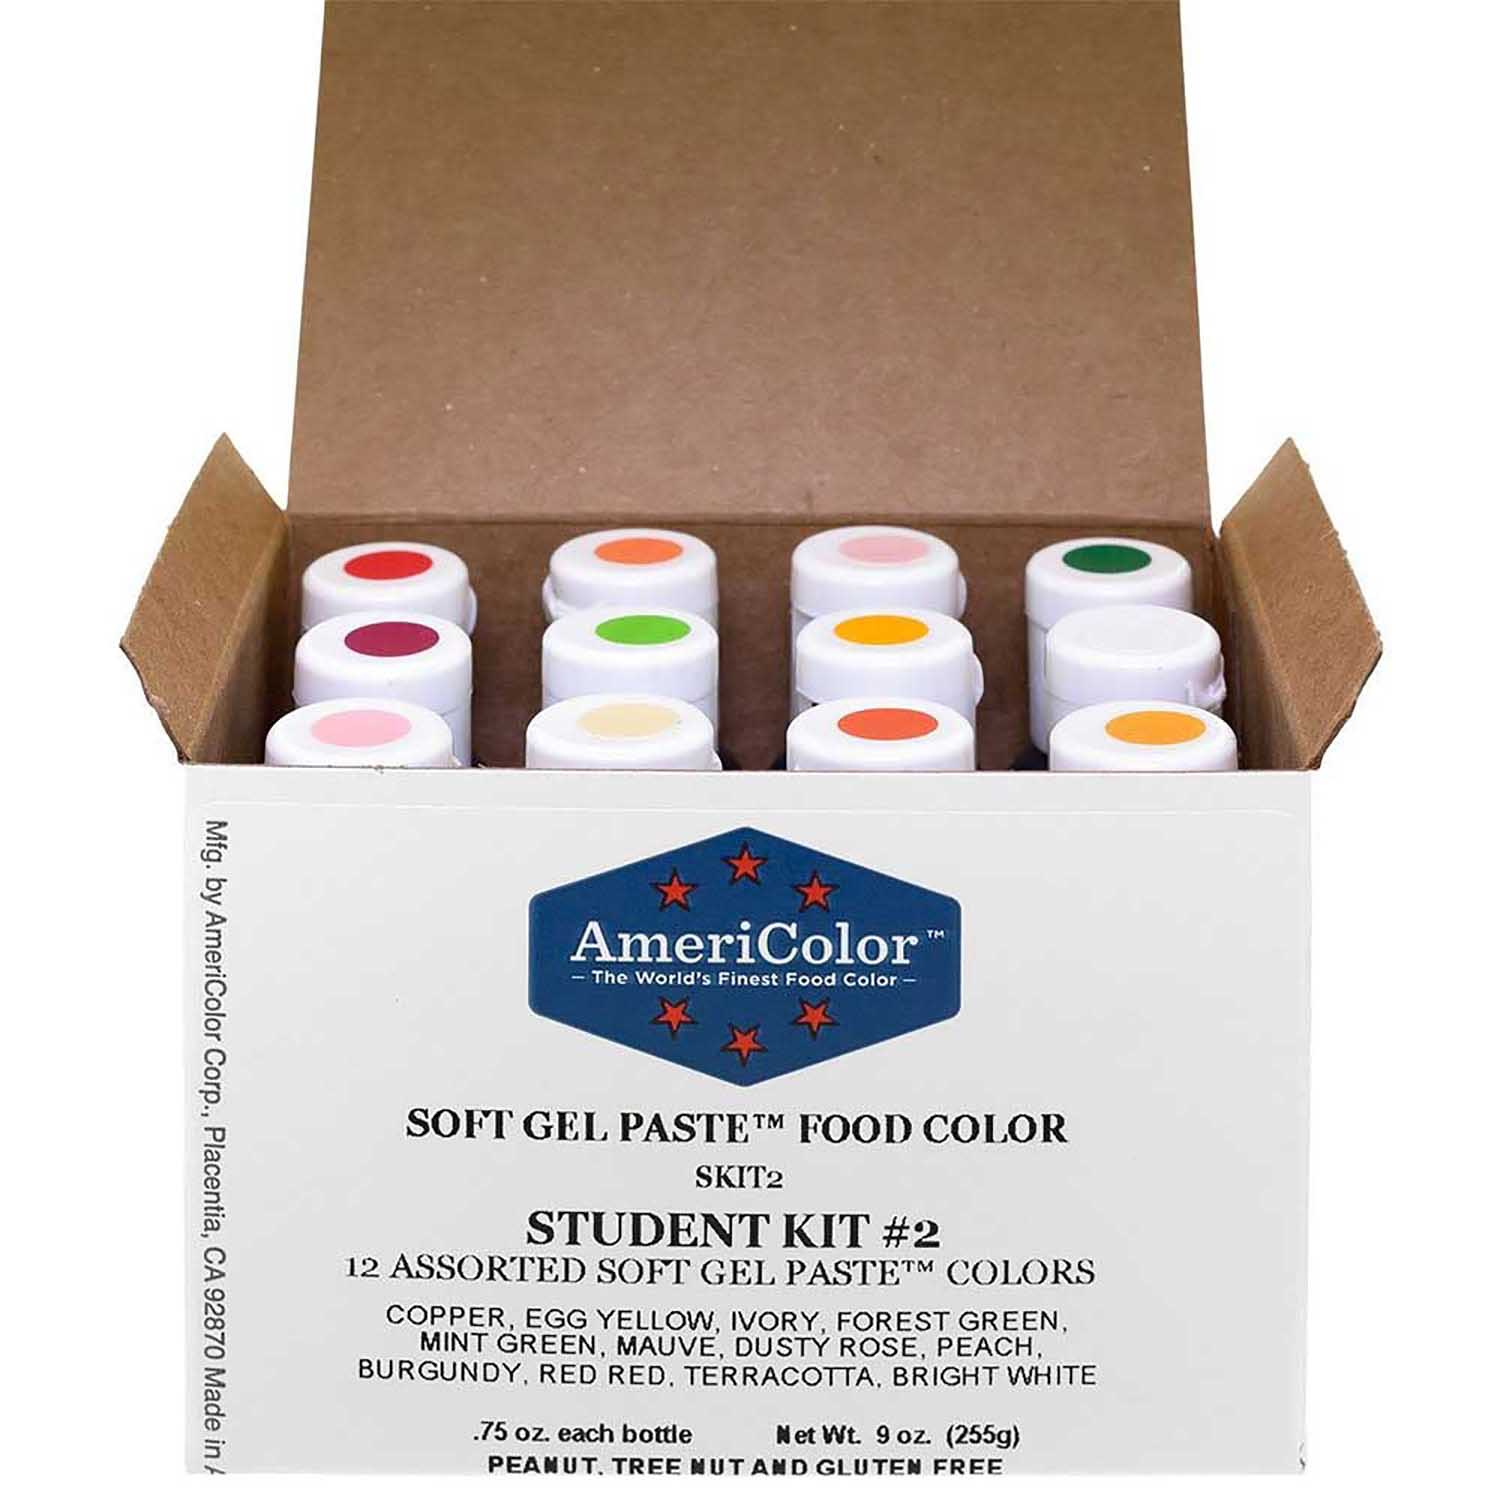 Student #2 Soft Gel Paste™ Food Color Kit